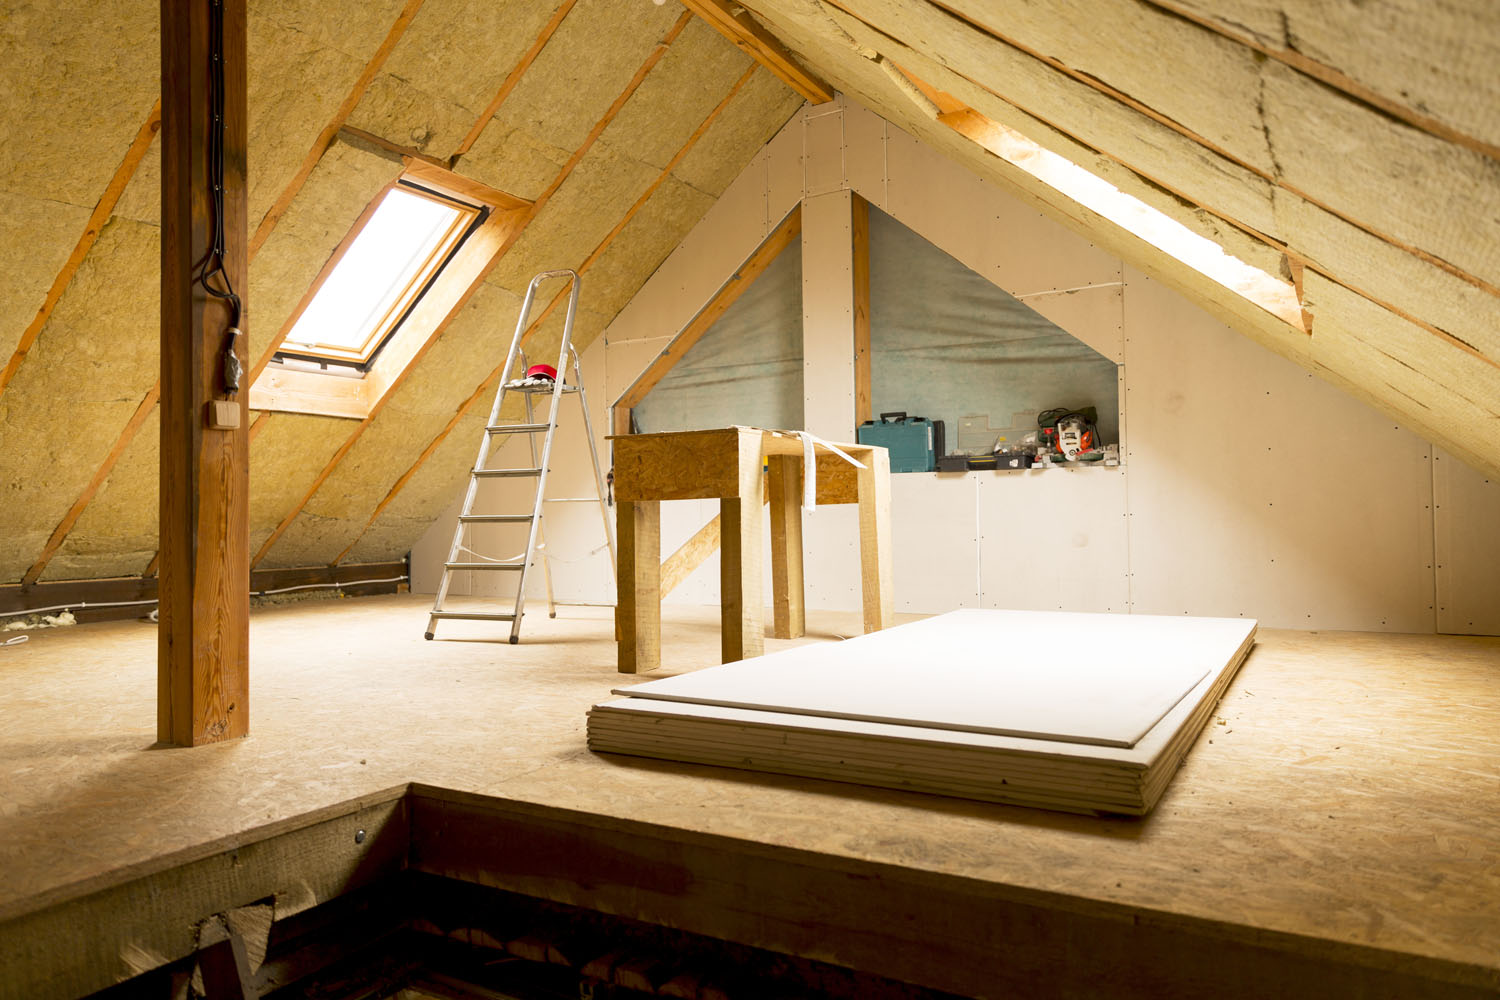 Family home with attic insulation in repair, wood, tools & ladder included. Need roof insulation? Call Keyprime Roofing